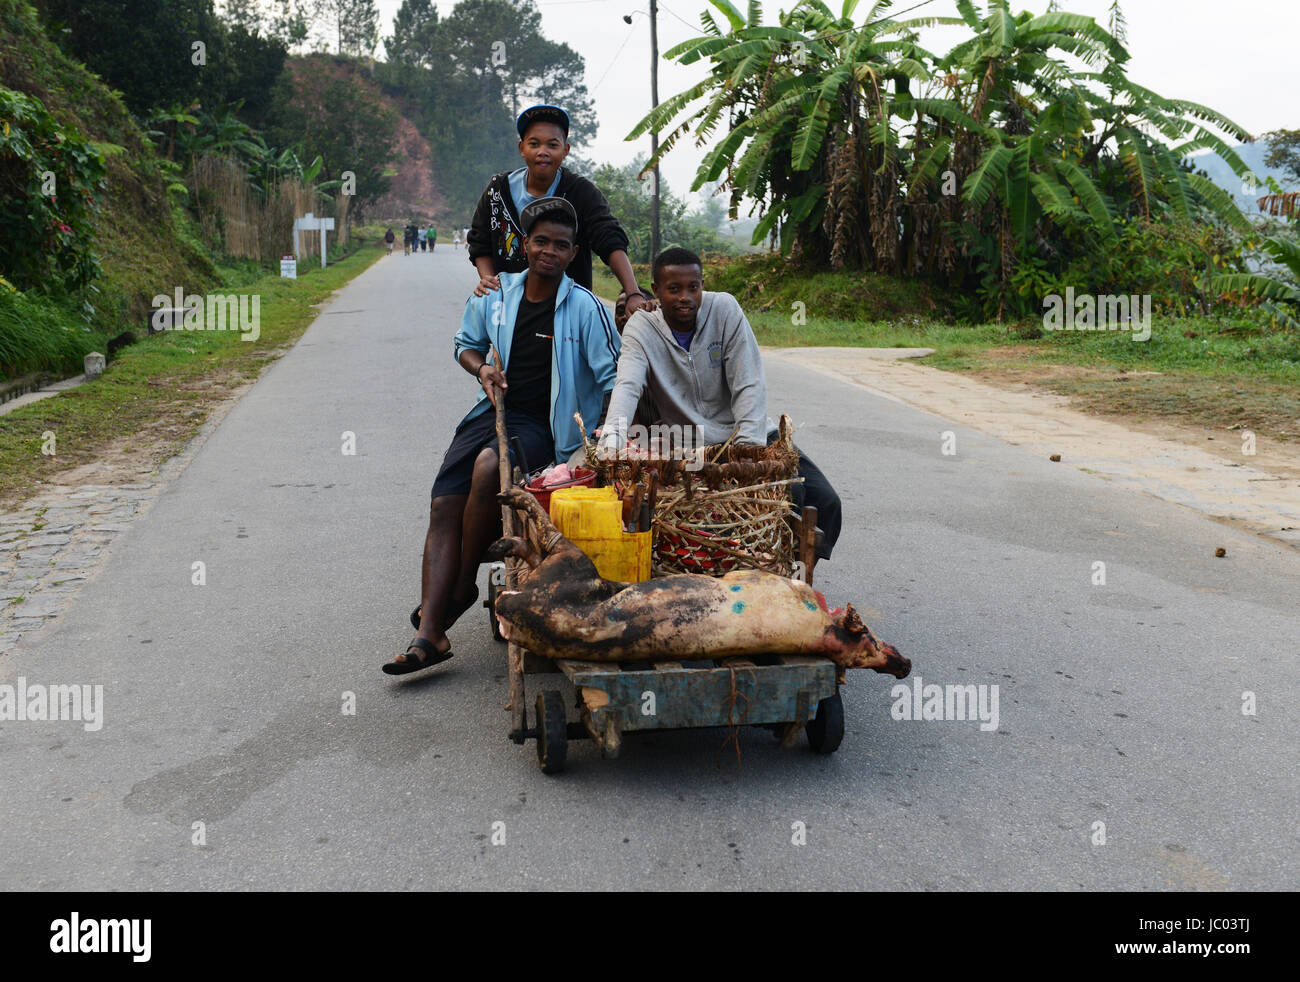 Carrying a slaughtered pig in central Madagascar. - Stock Image